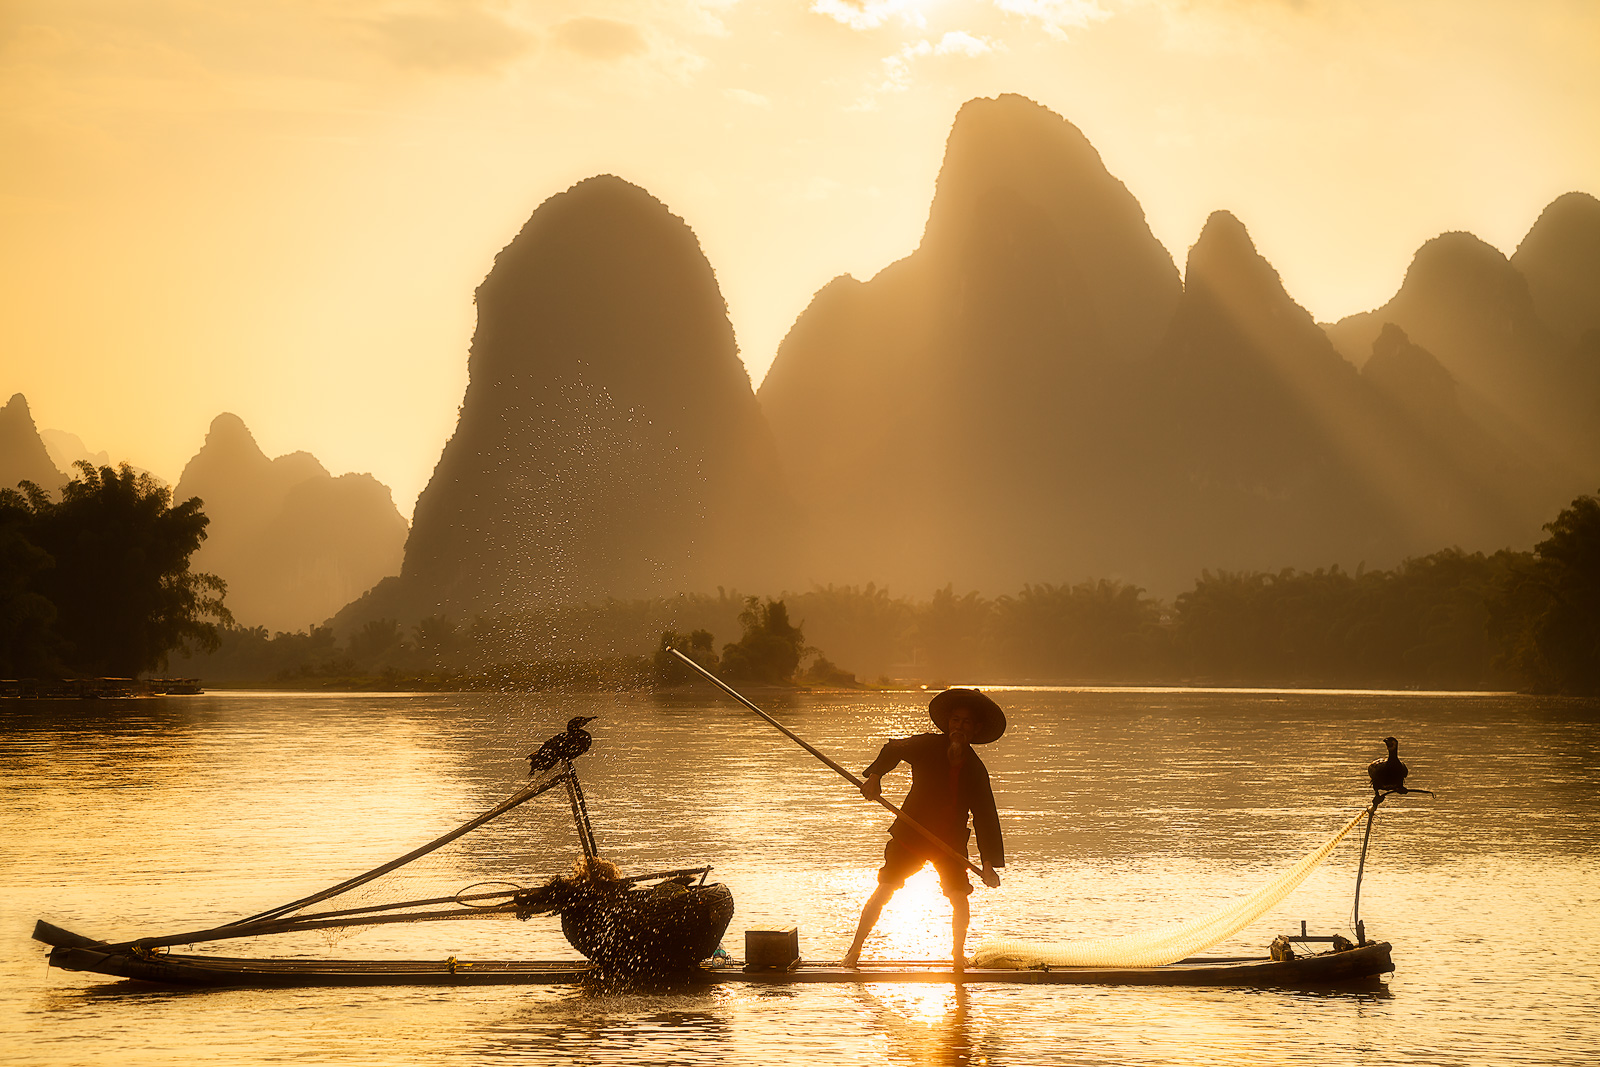 asia,asian,boat,china,chinese,cormorant,environmental portait,evening,fisherman,fishing boat,guilin,hill,karst,karst mountains,landscape,li river,male,man,mountain,mountain range,people,portrait,range, photo